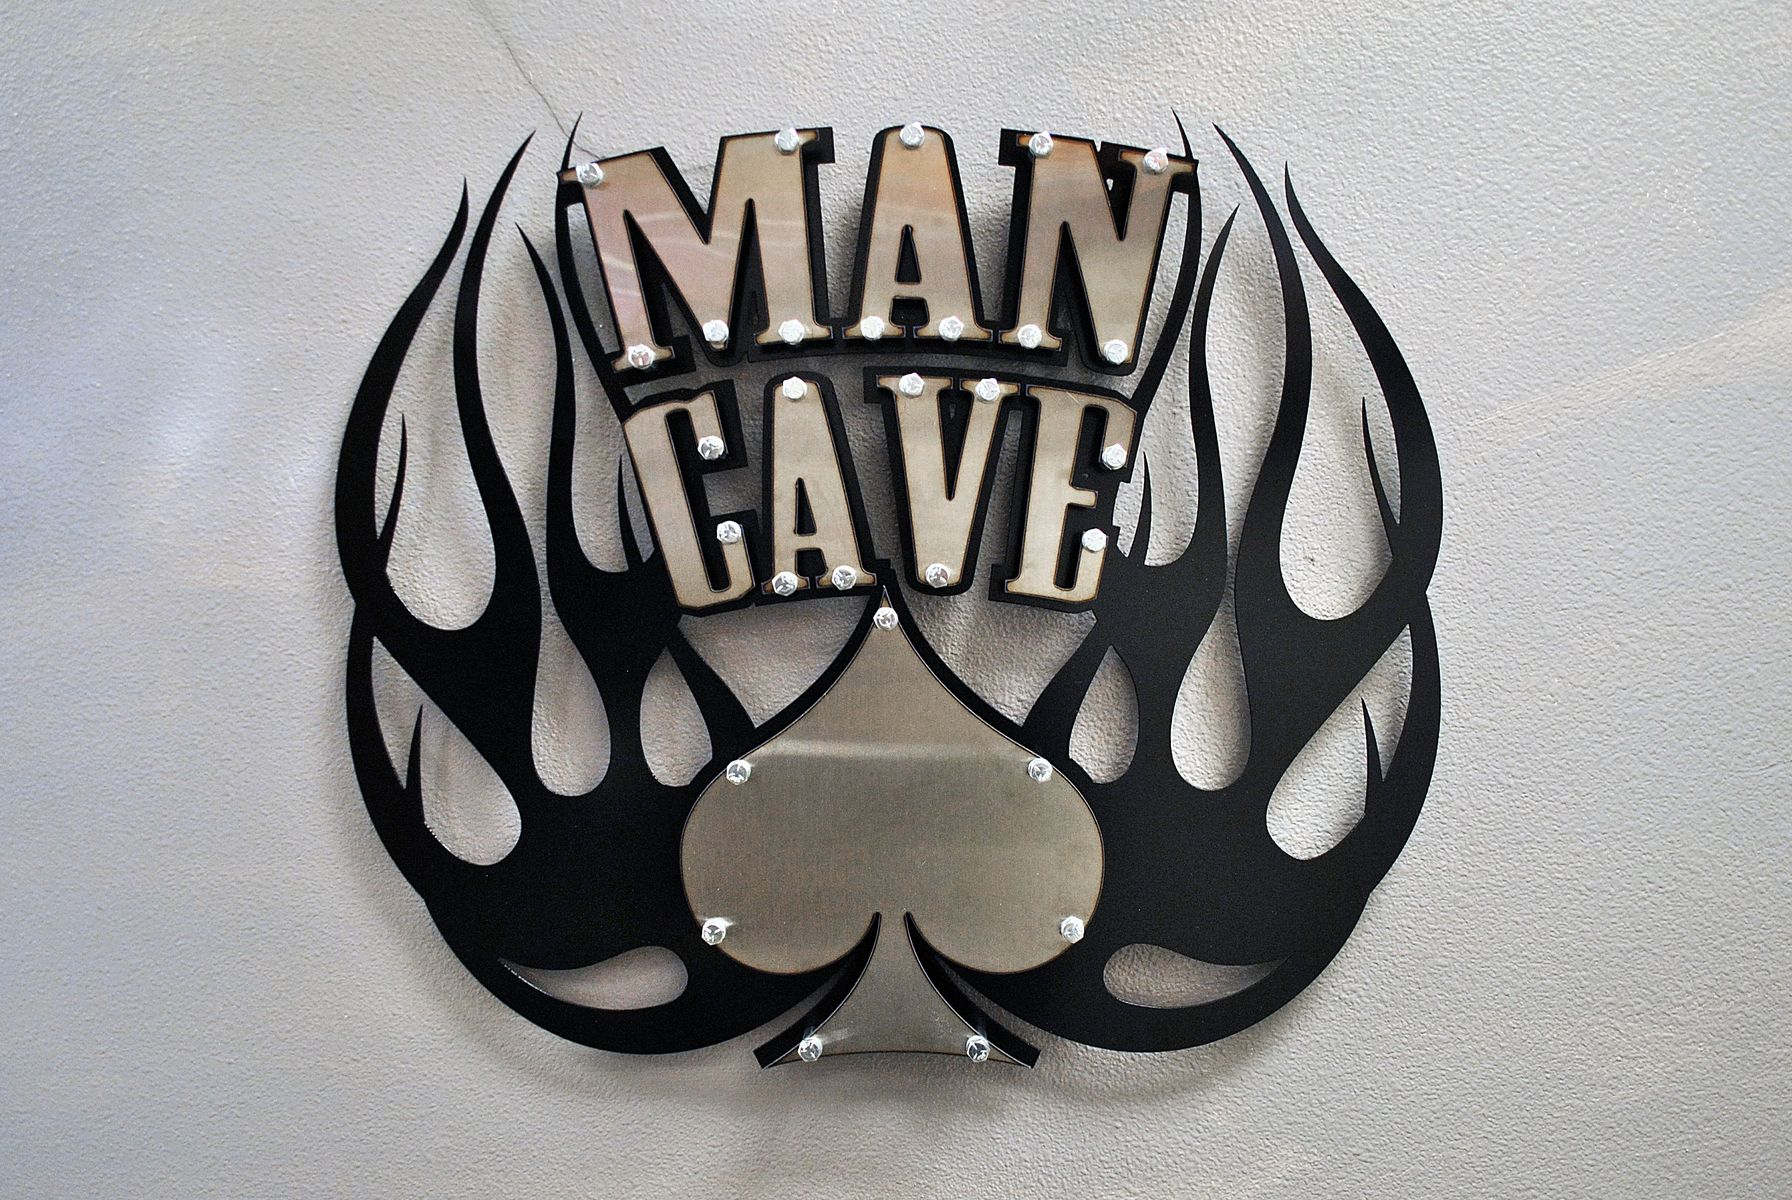 Personalized Man Cave Signs Etsy : The best 100 man cave sign image collections nickbarron.co home